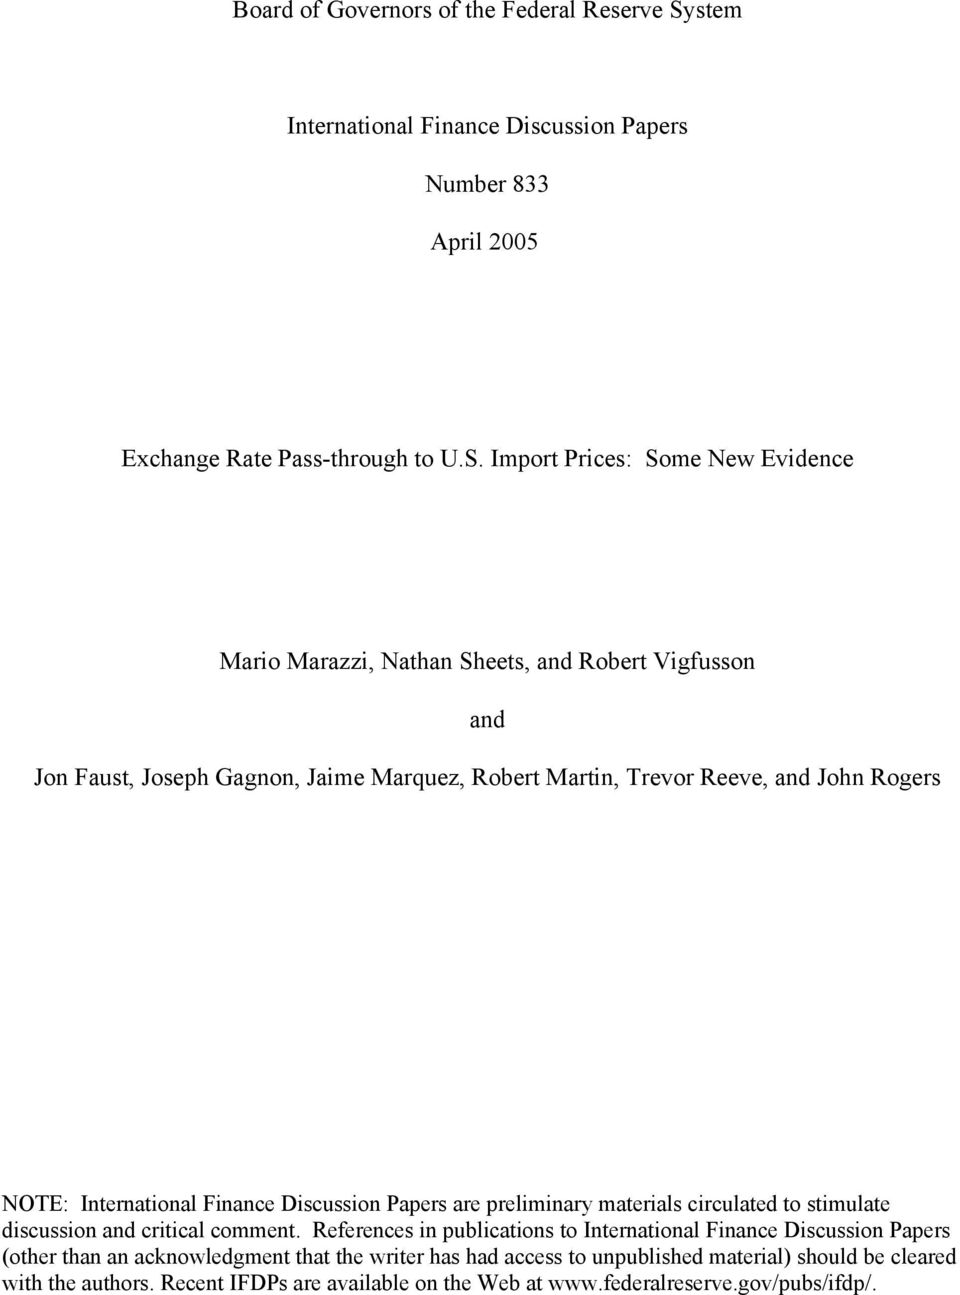 Import Prices: Some New Evidence Mario Marazzi, Nathan Sheets, and Robert Vigfusson and Jon Faust, Joseph Gagnon, Jaime Marquez, Robert Martin, Trevor Reeve, and John Rogers